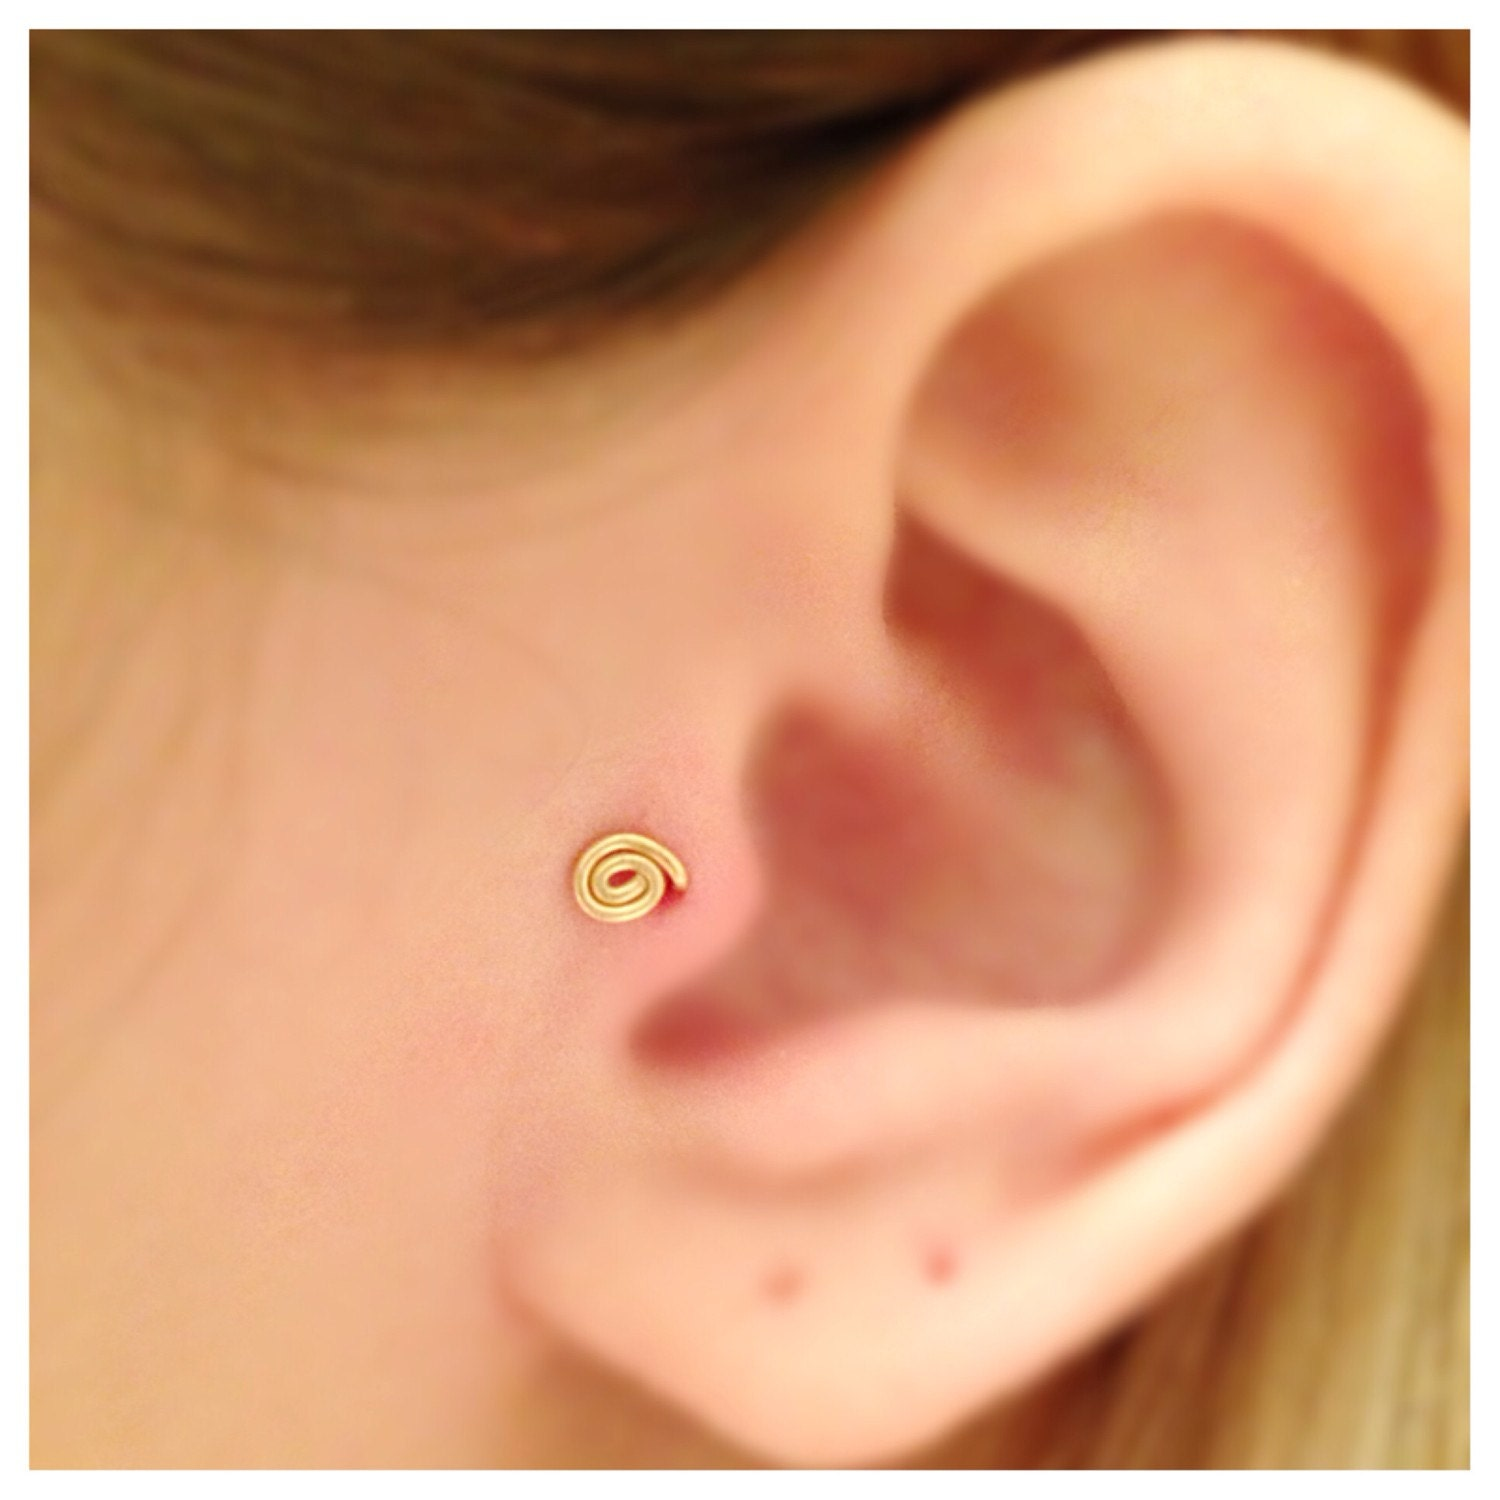 Tiny 14k Gold Filled Spiral Tragus Earring Gold Tragus